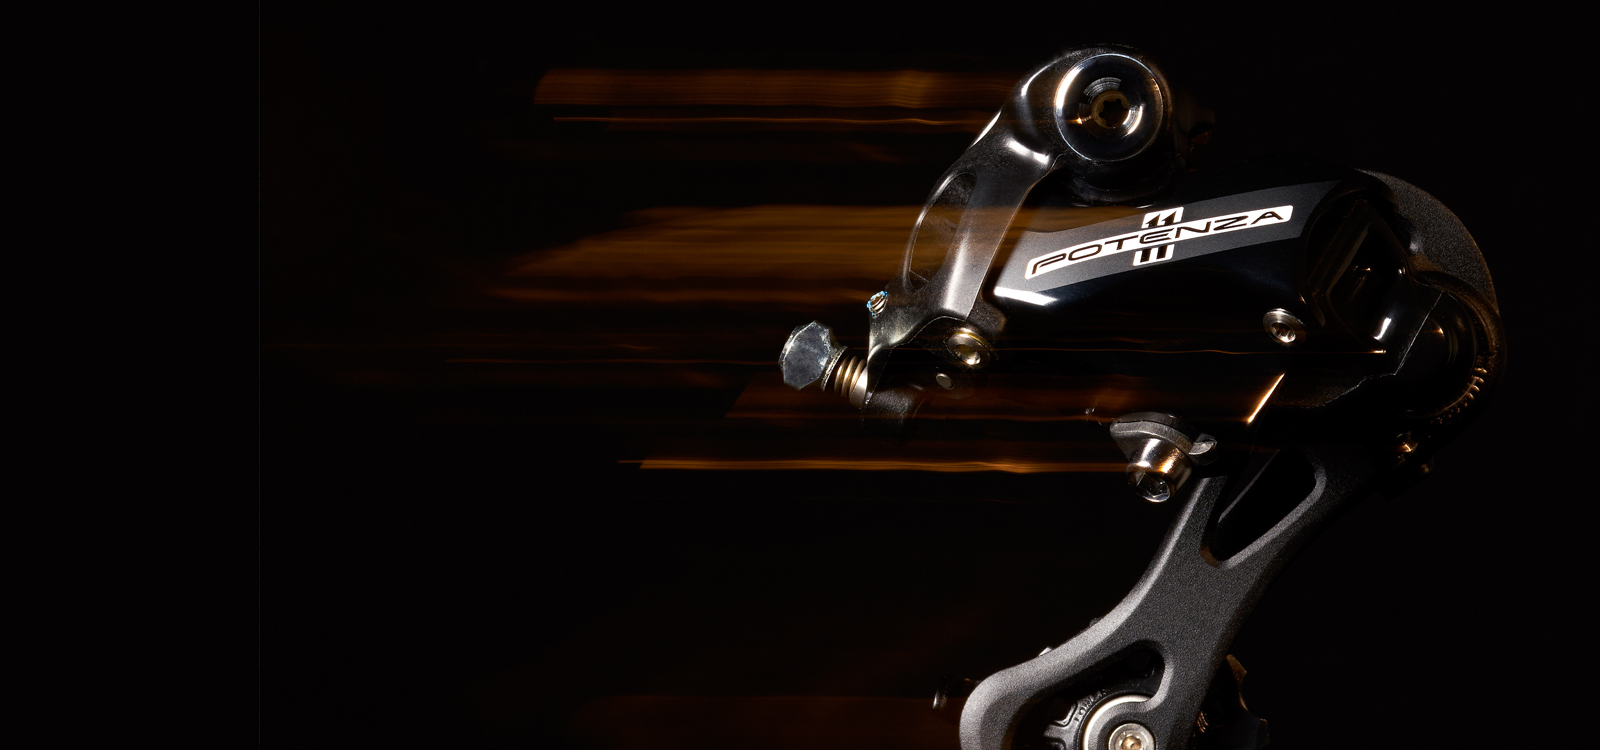 The Potenza 11 groupset